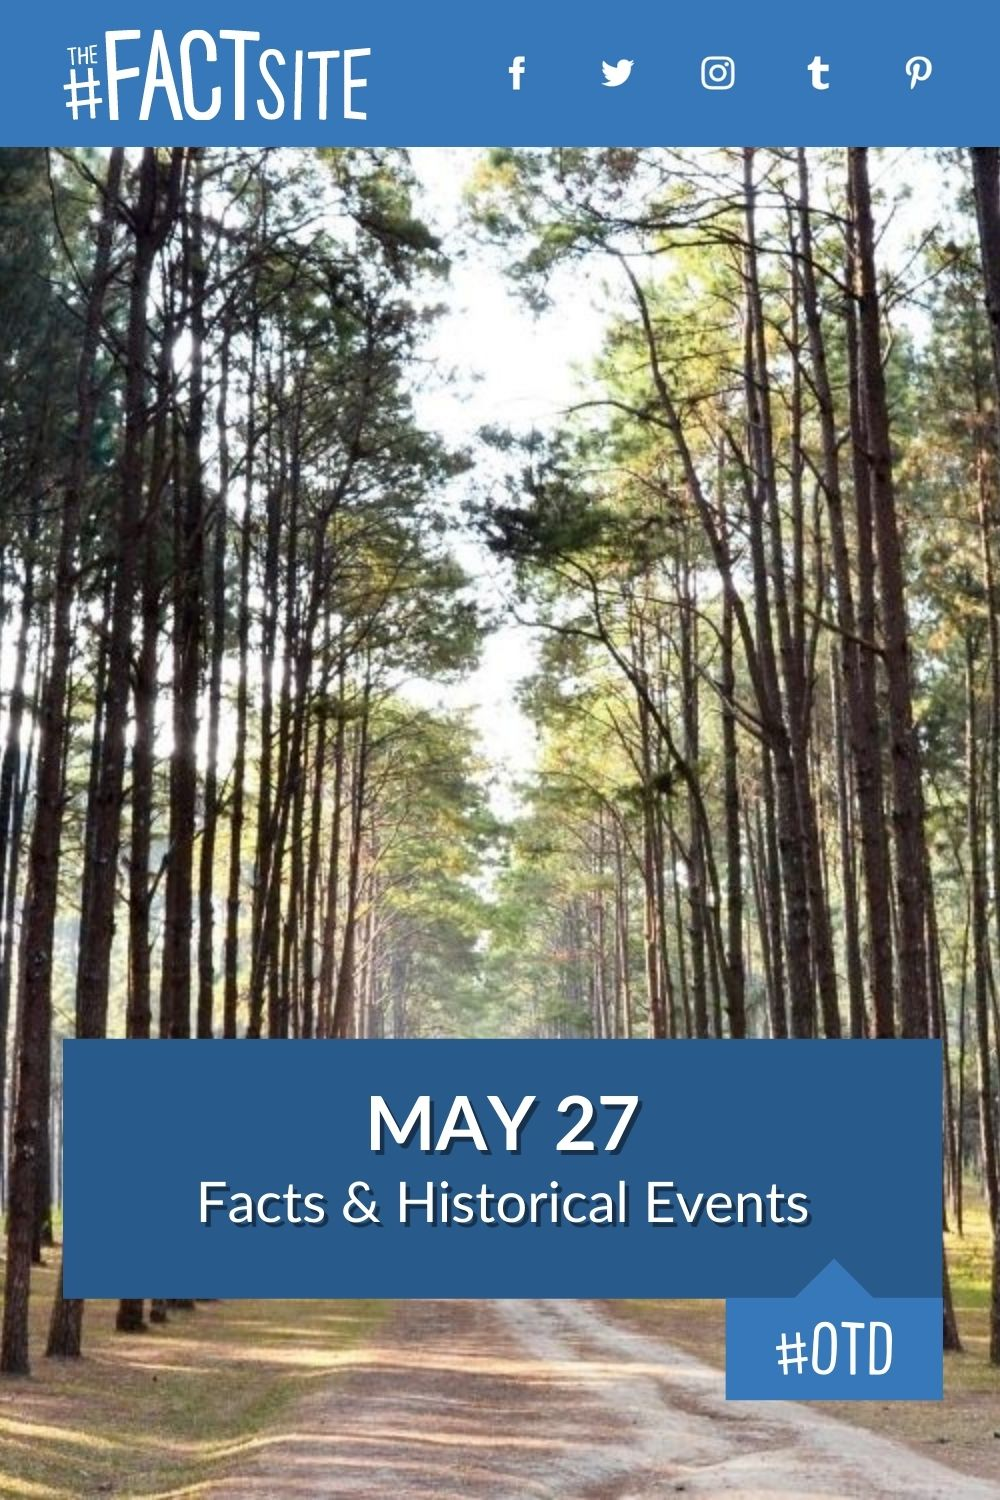 Facts & Historic Events That Happened on May 27